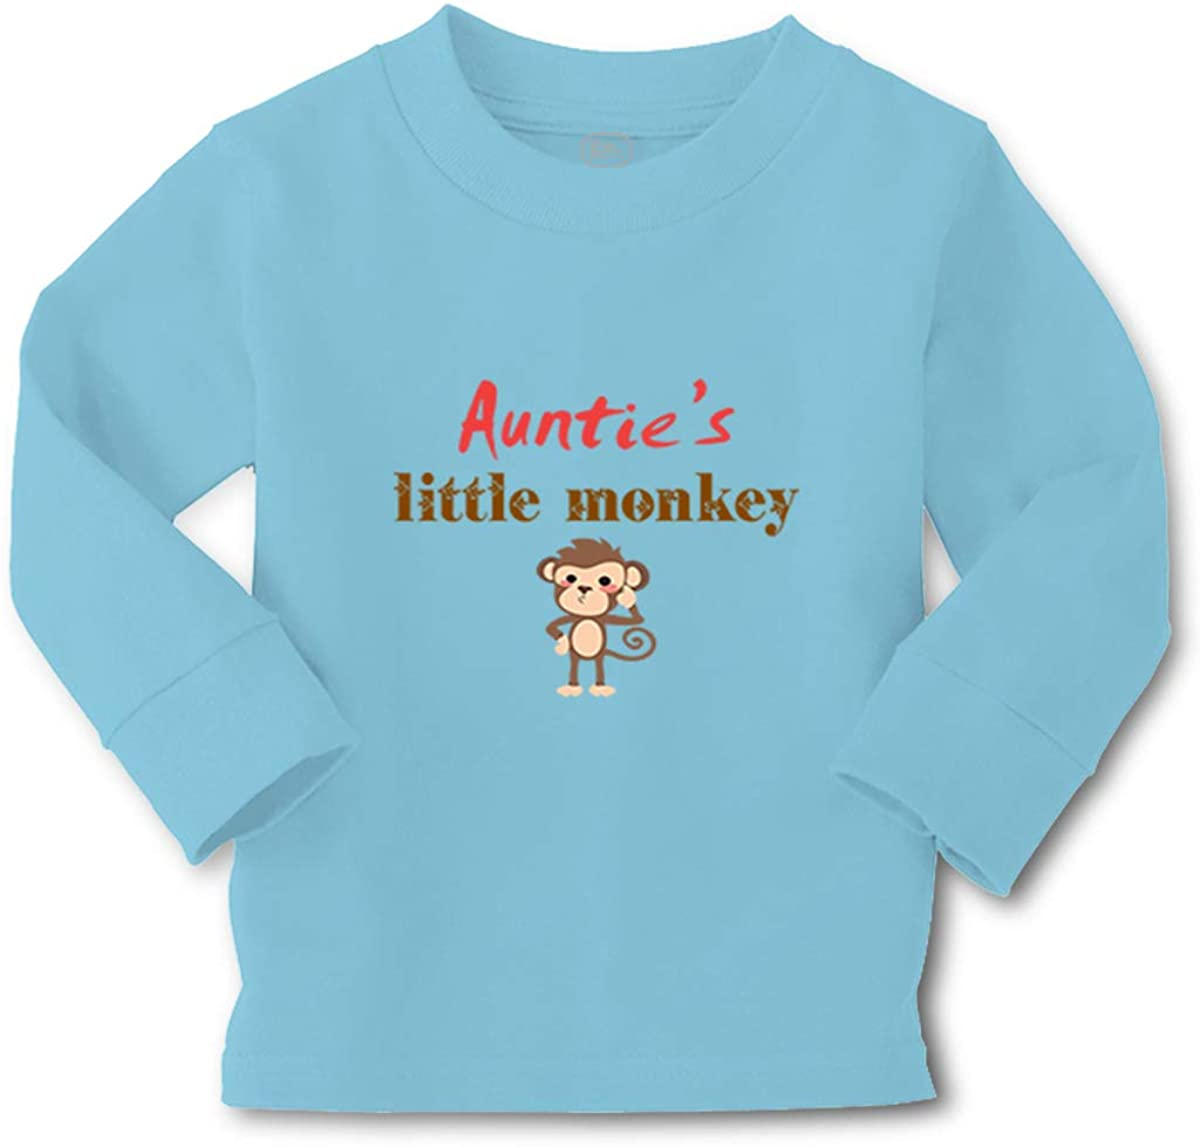 Cute Rascals Kids Long Sleeve T Shirt Auntie's Little Monkey Aunt Funny Boy & Girl Clothes